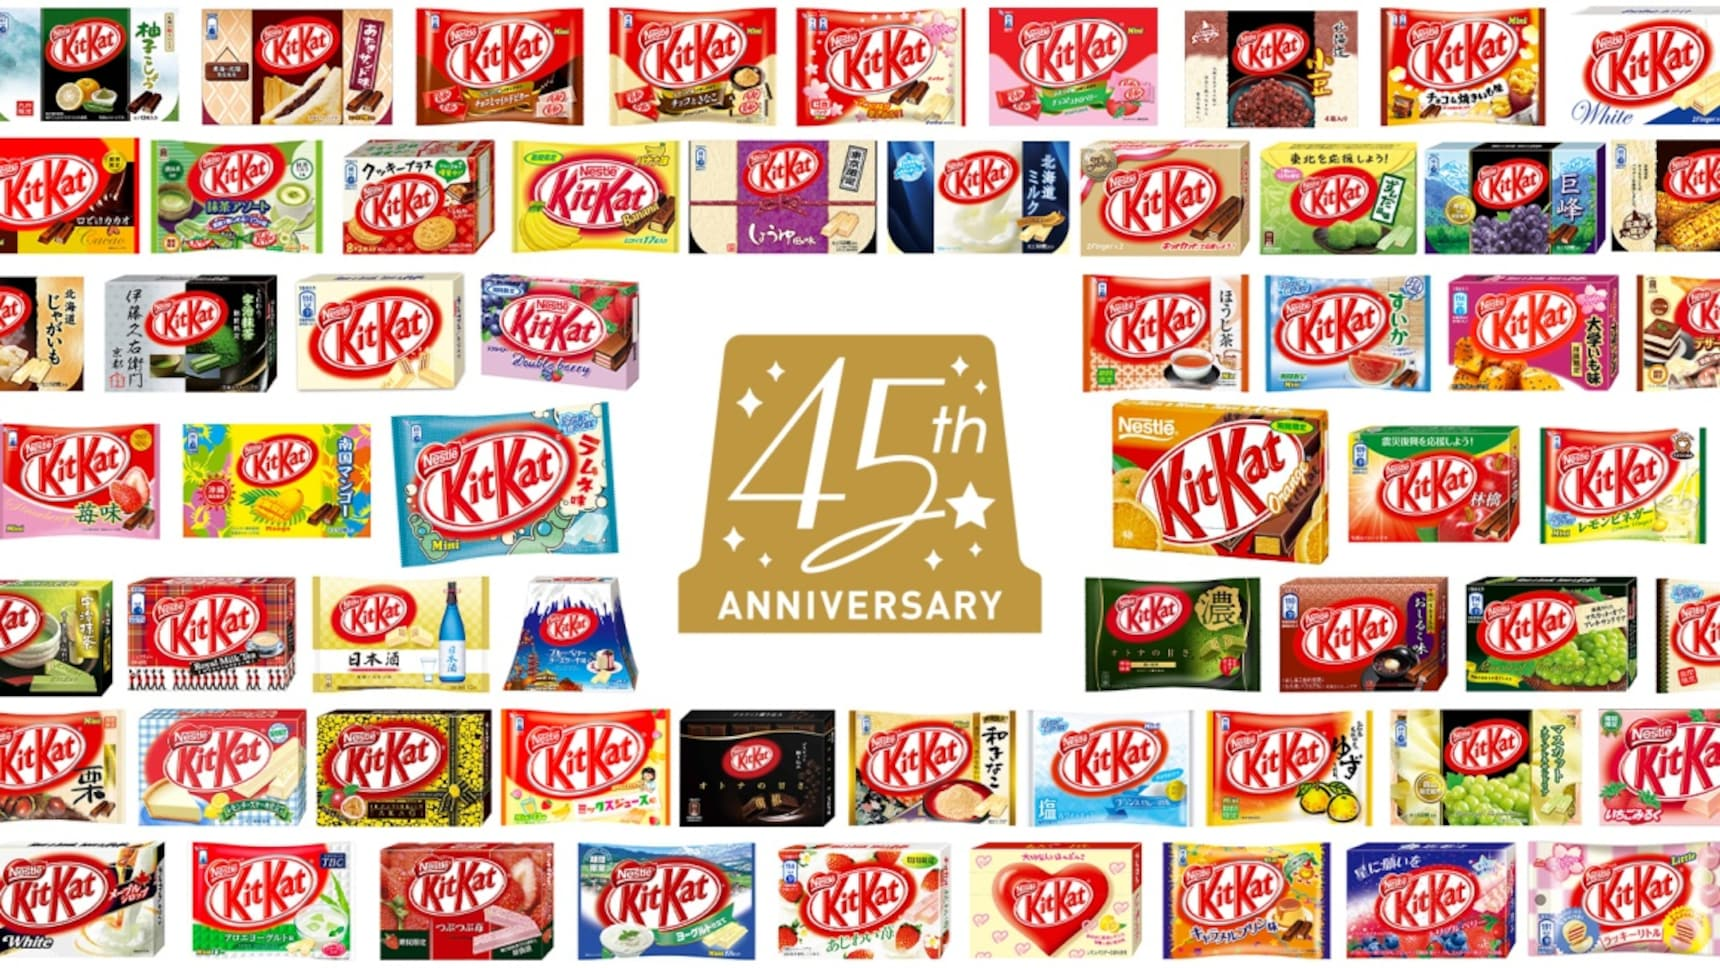 Cast Your Vote for the Next Kit Kat Flavor!